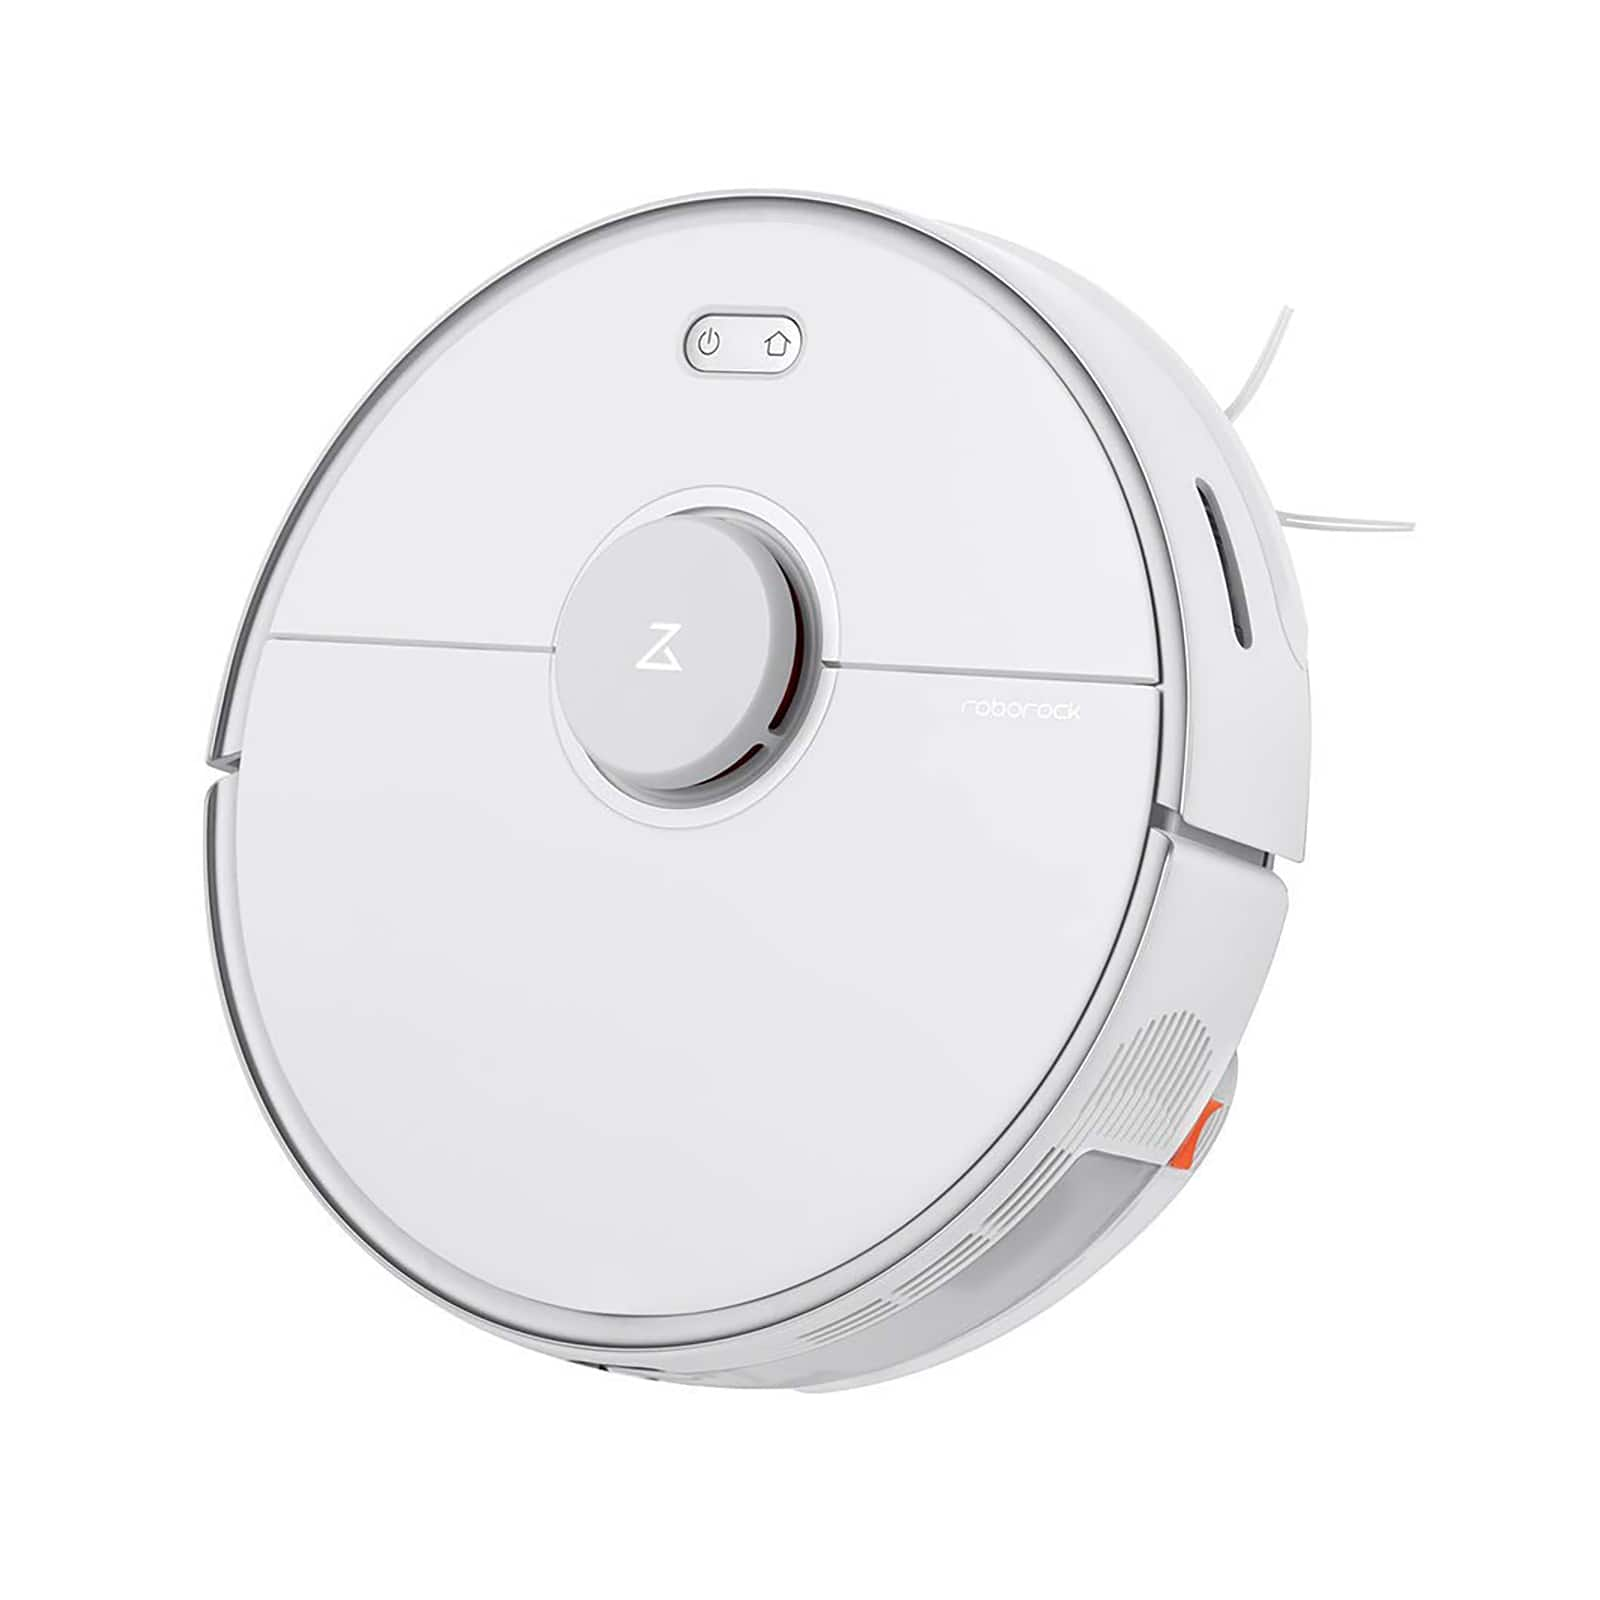 RoboRock S5 MAX (best rated version) for $549 at Walmart $549.99